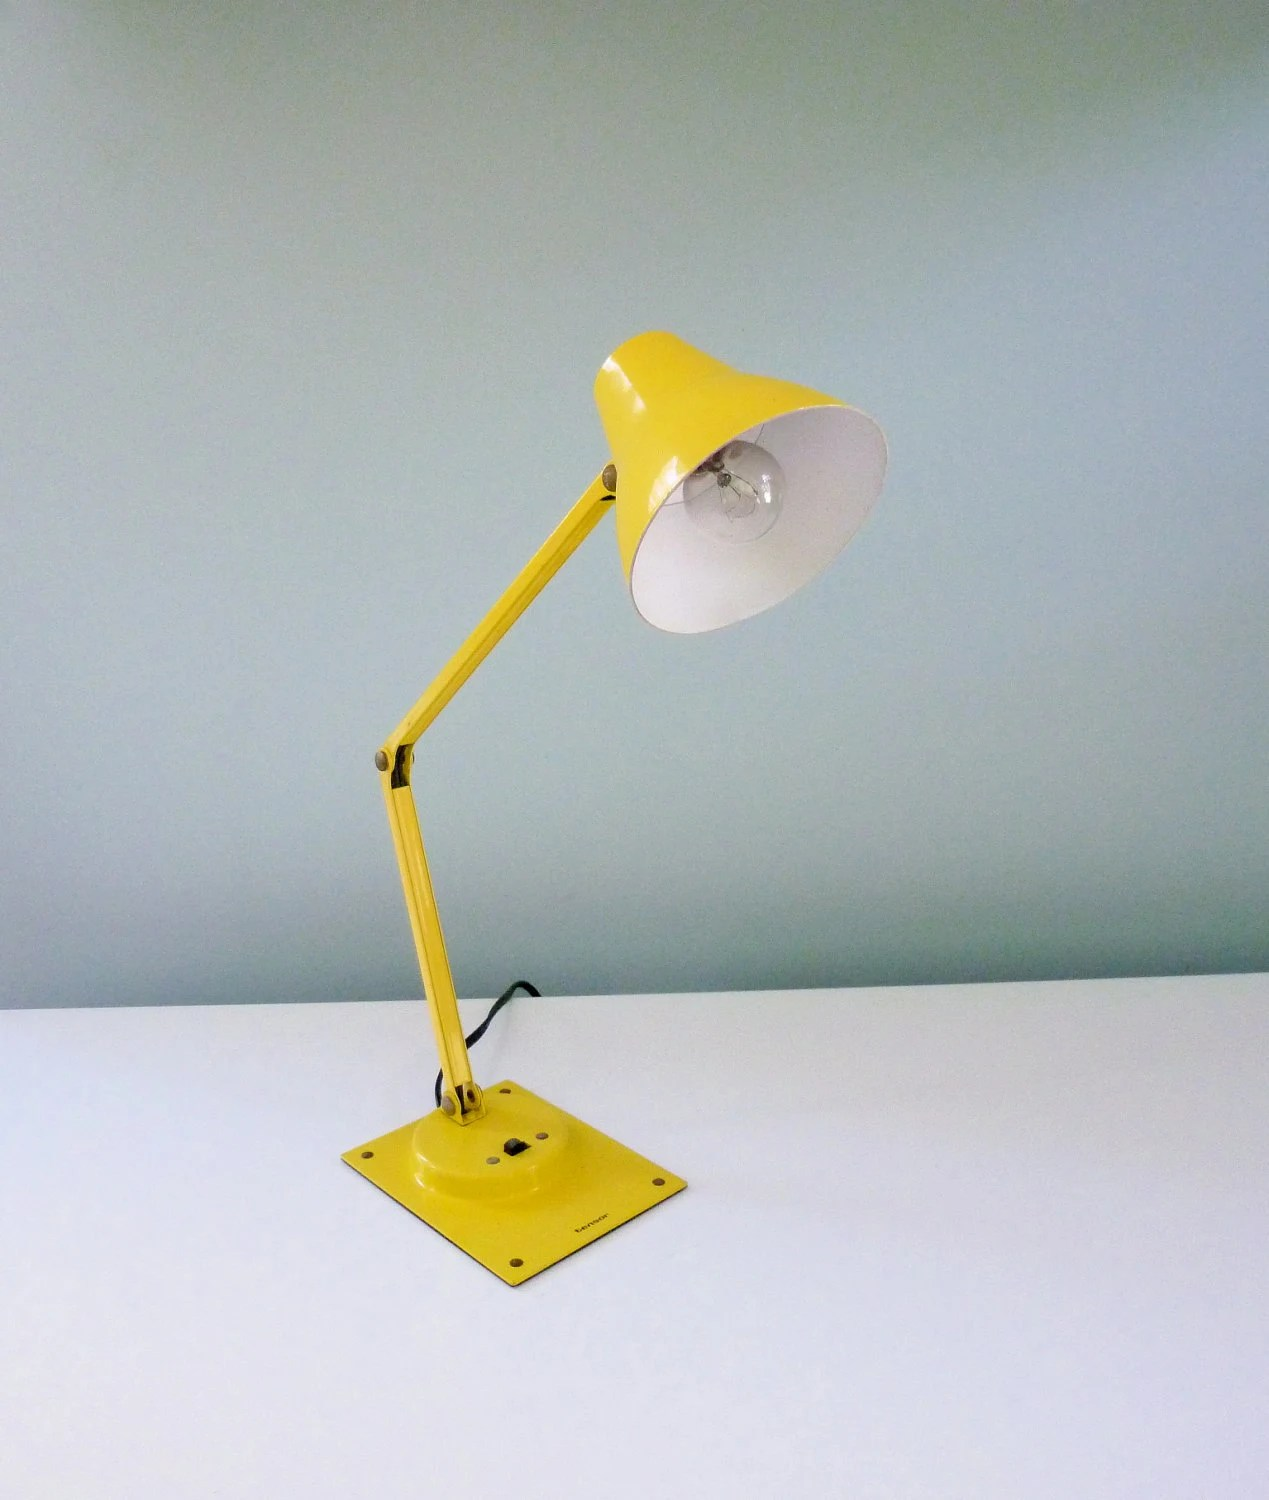 Pixar Desk Lamp Yellow Desk Lamp Pixar Light Tensor Portable Adjustable Lamp